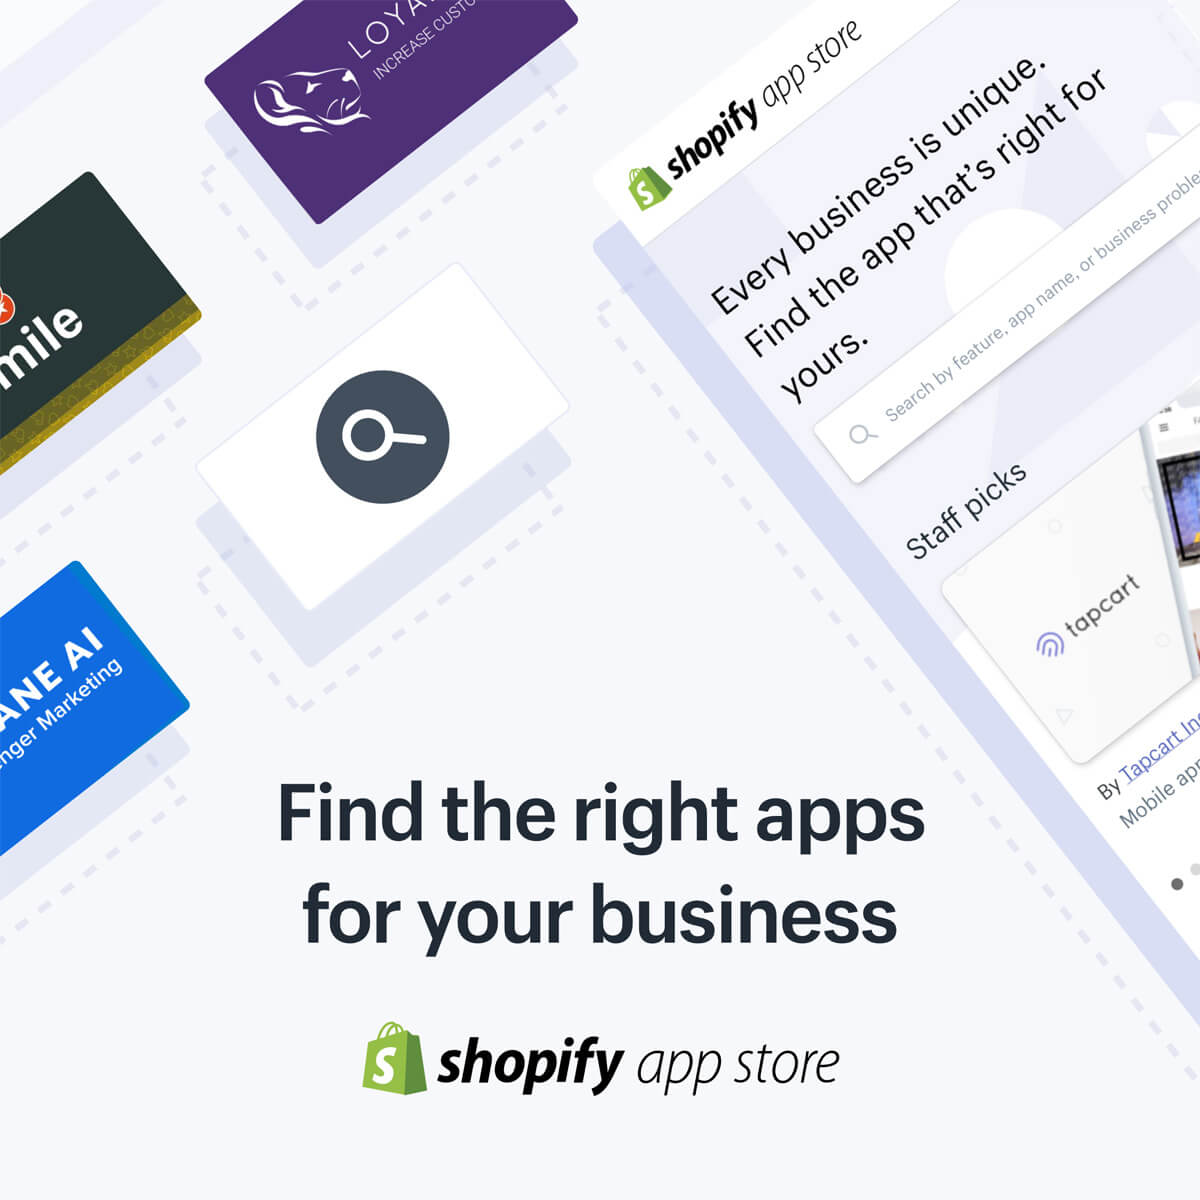 Shopify App Store Ecommerce App Marketplace